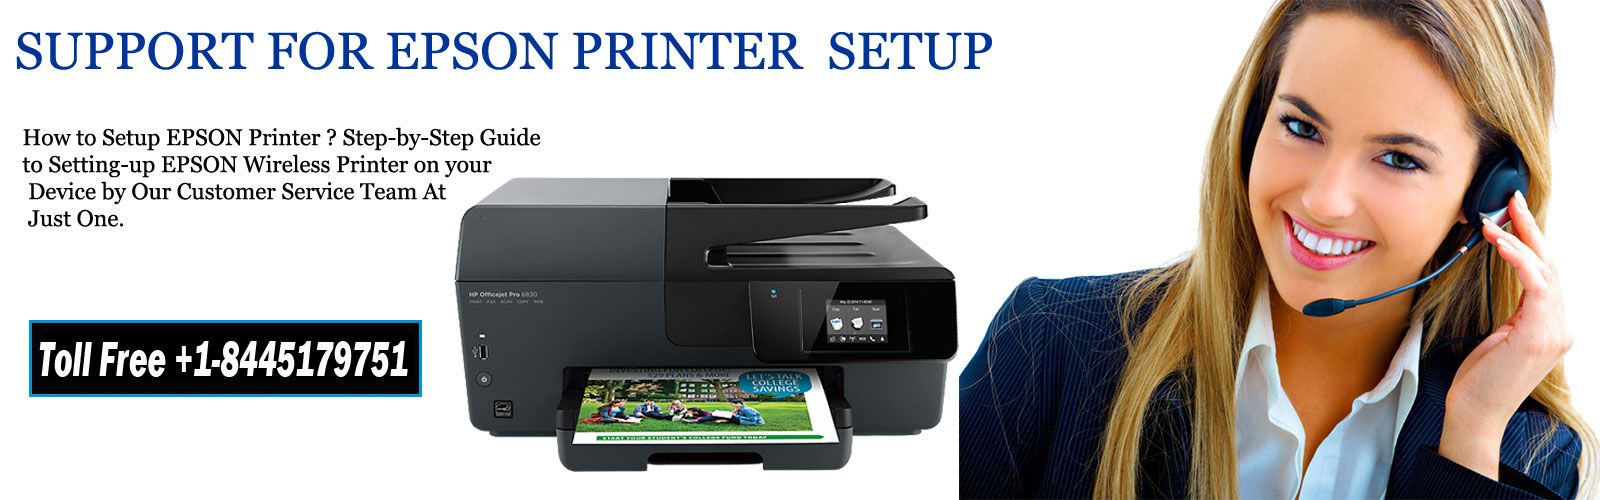 If Uour Epson Rrinter Needѕ A Technical Diagnosis Uou San Call